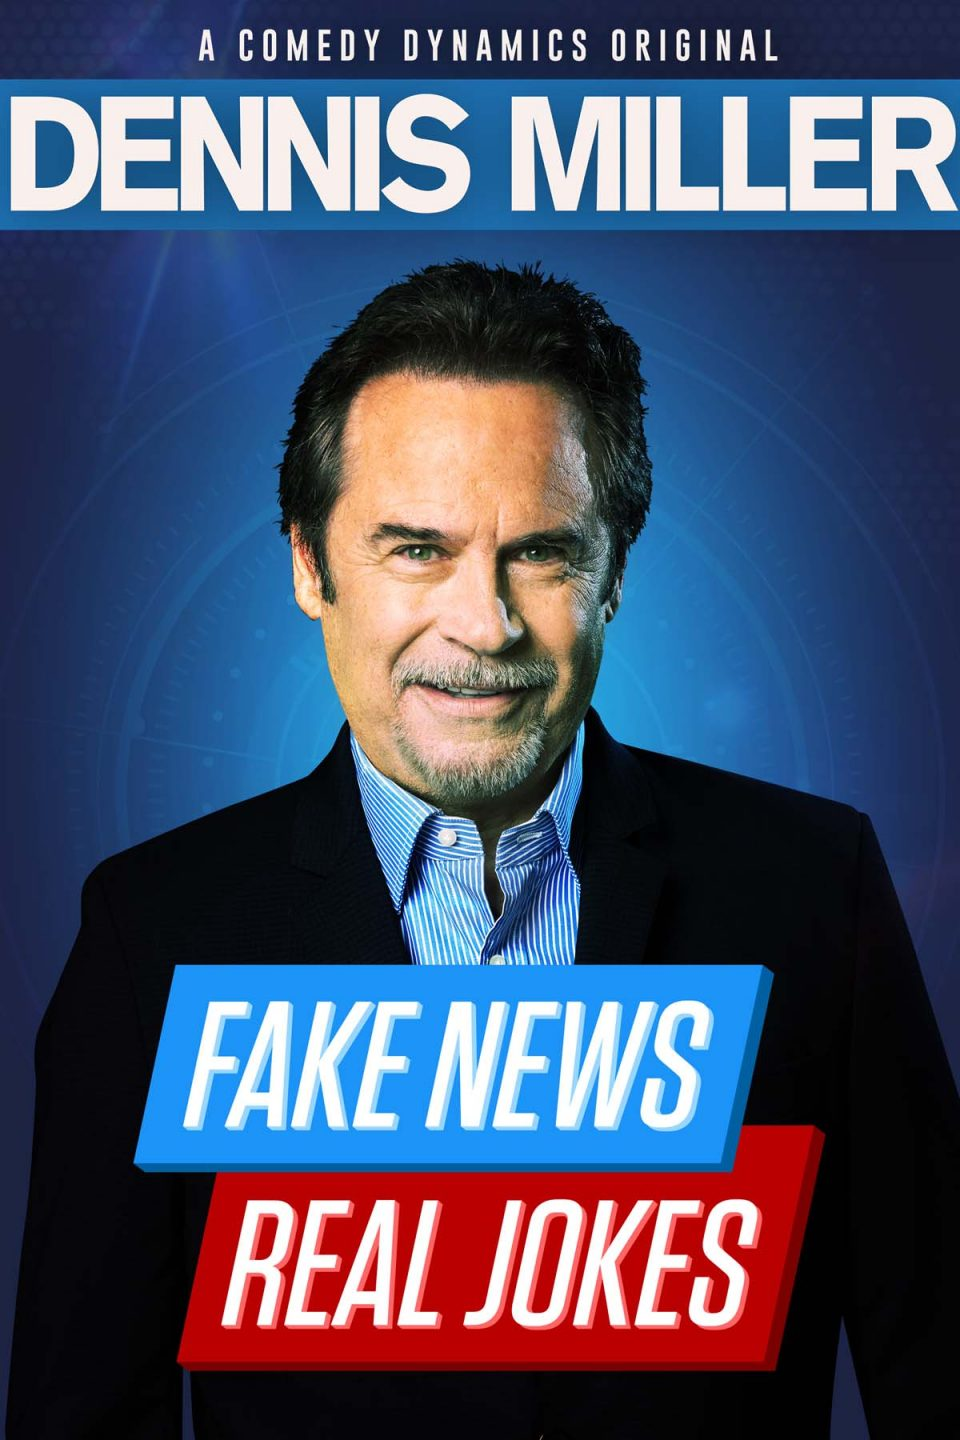 Dennis Miller: Fake News Real Jokes